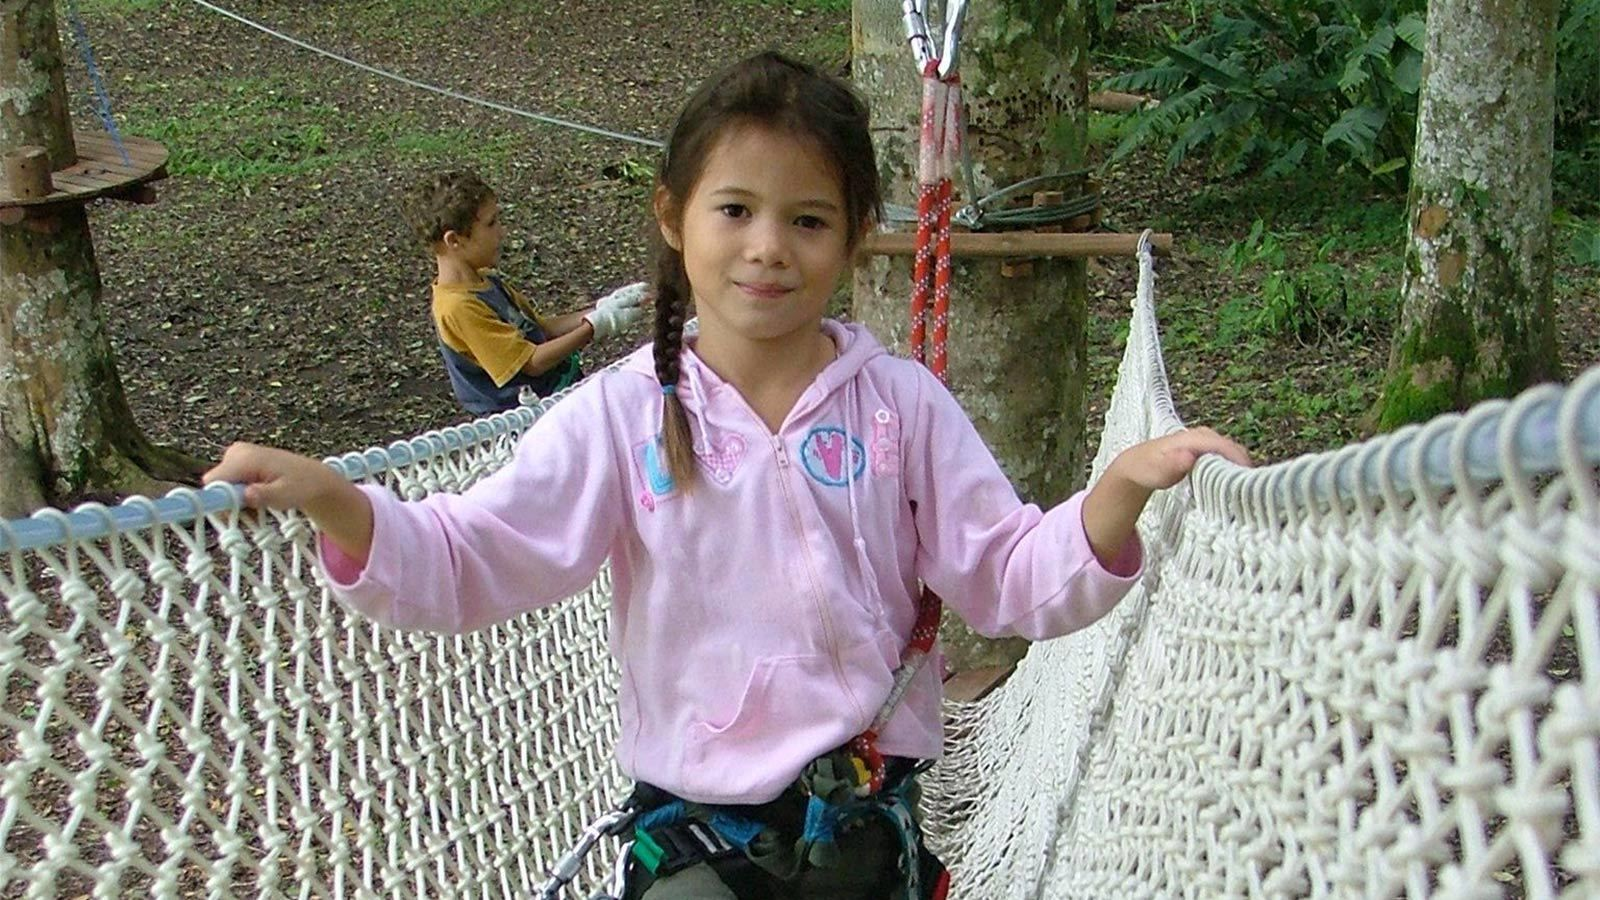 Child on a ropes course at the Bali Treetop Adventure Park